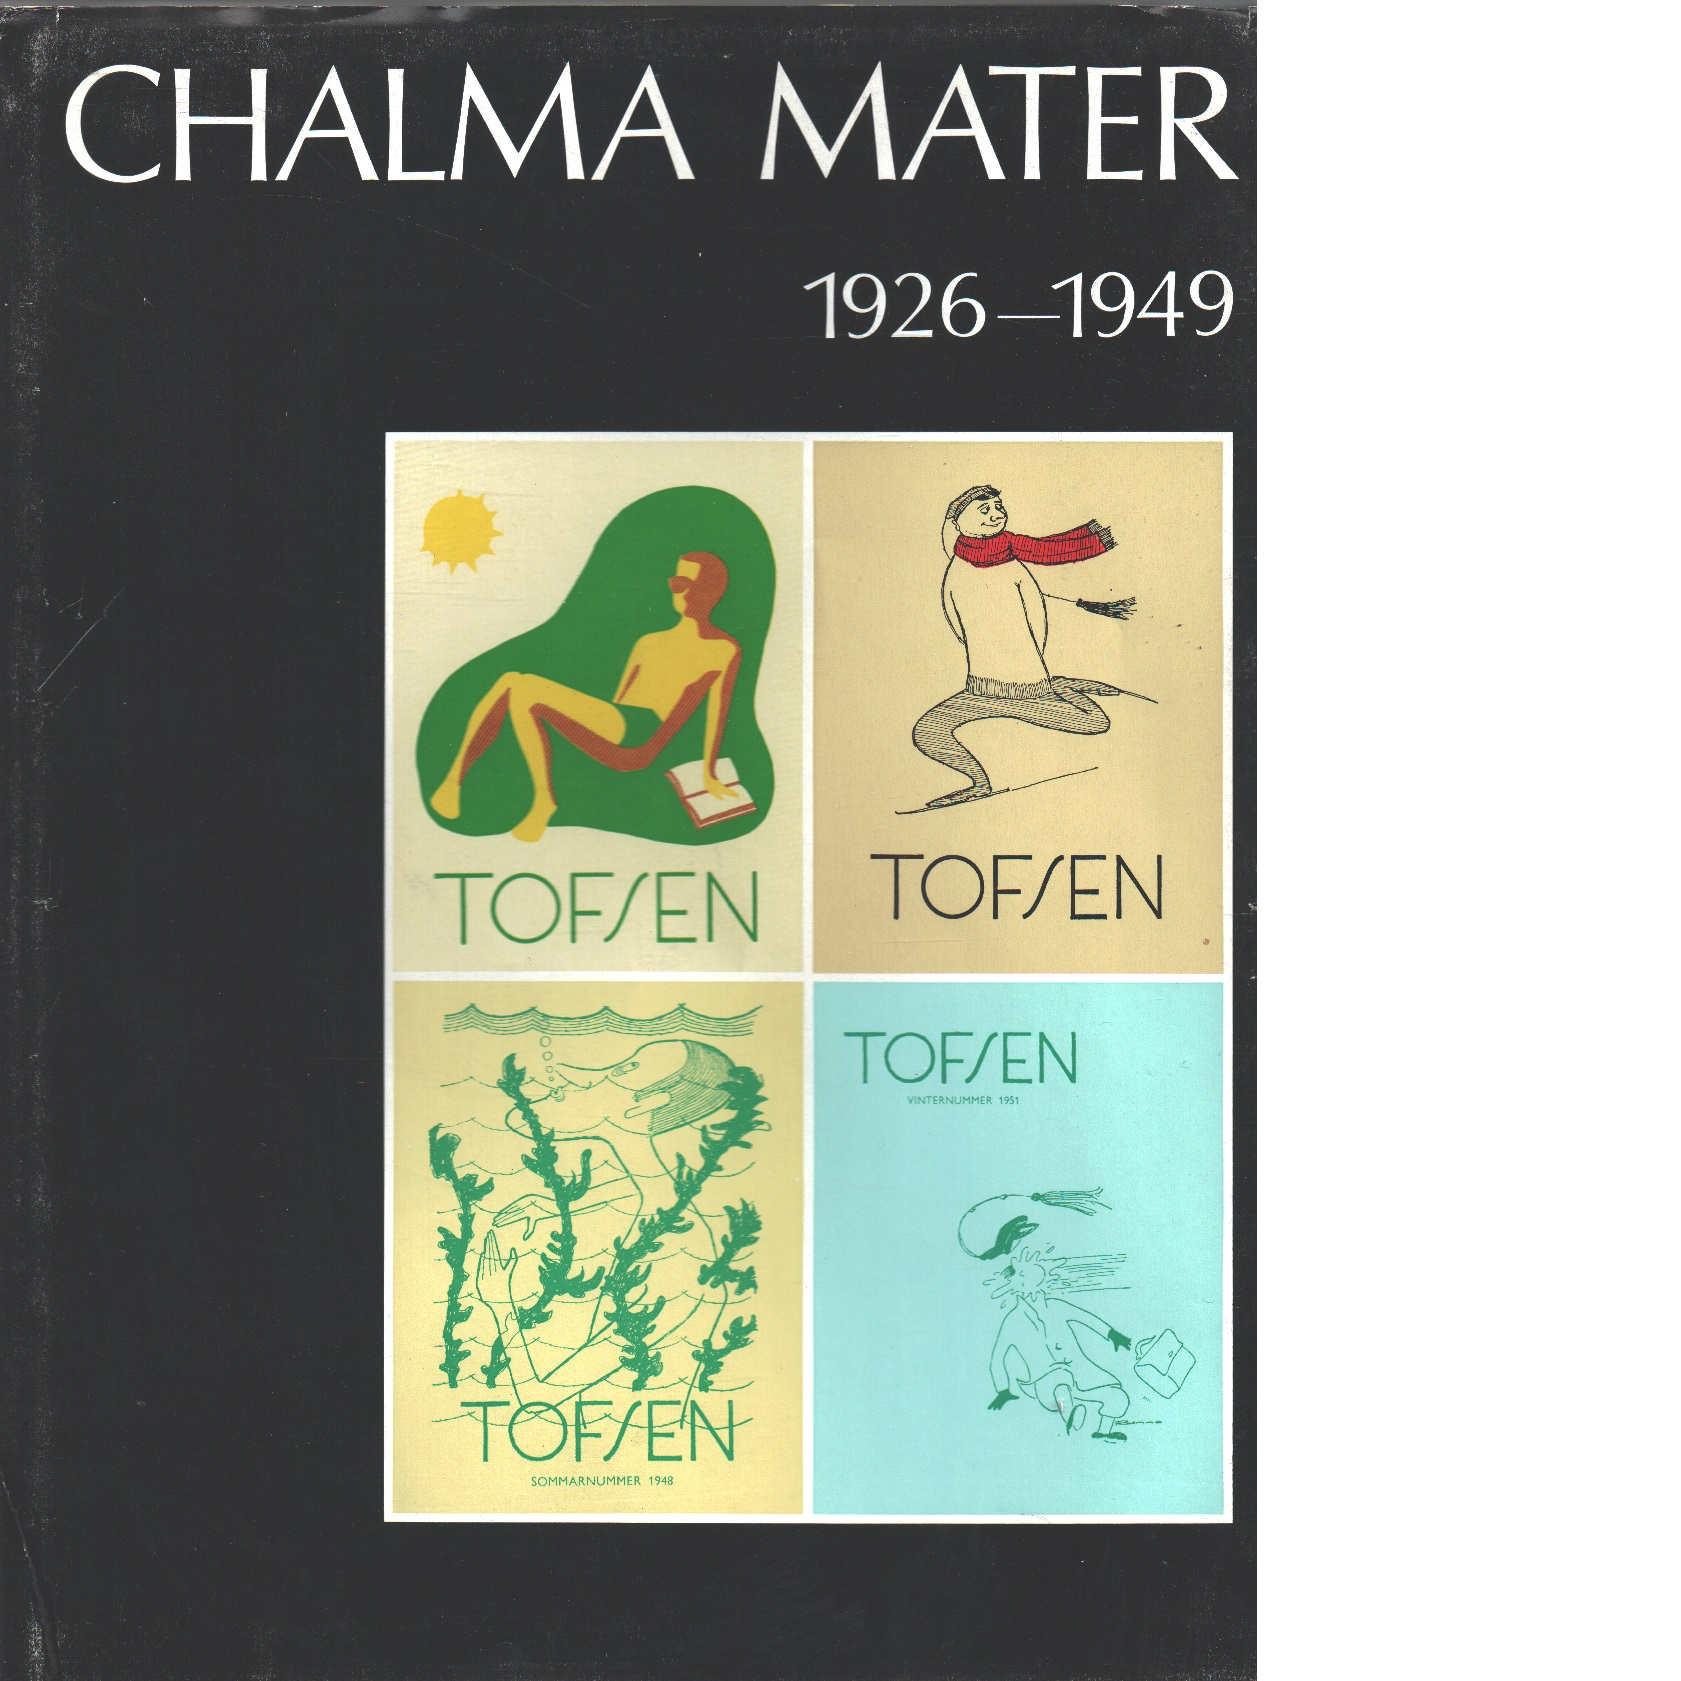 Chalma mater. D. 4, 1926-1949 - Red.